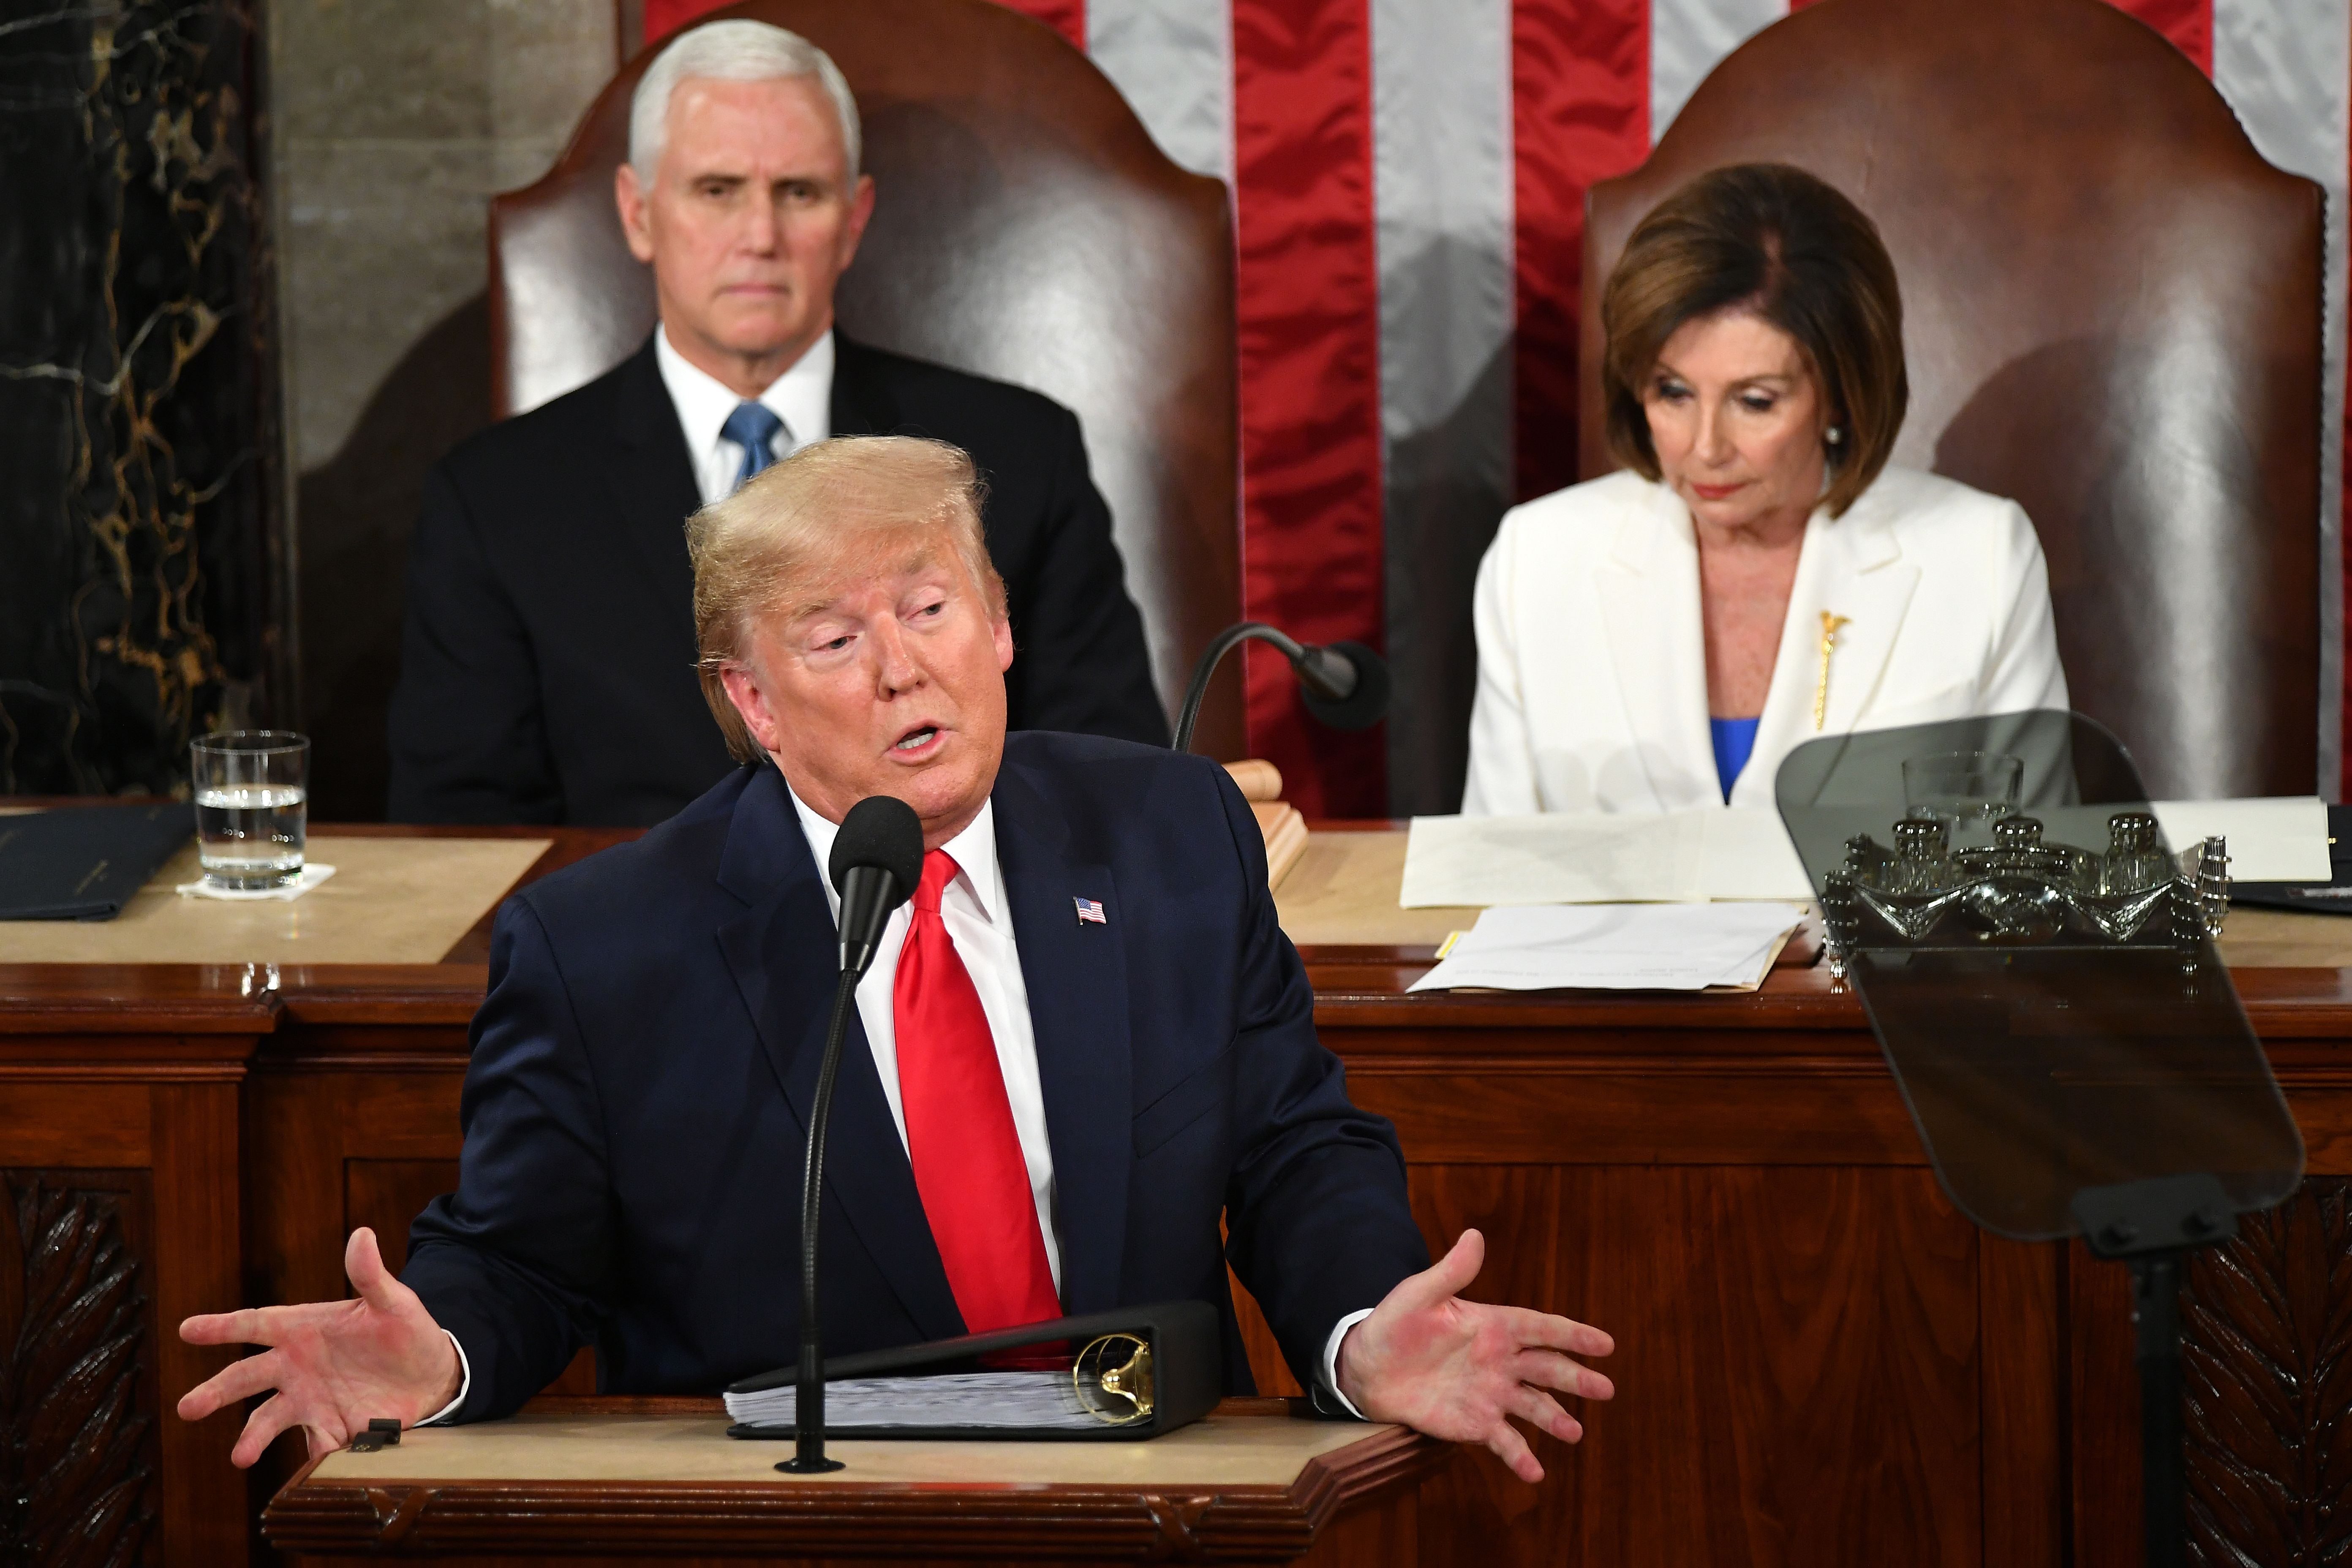 US President Donald Trump delivers the State of the Union address flanked by US Vice President Mike Pence (L) and Speaker of the US House of Representatives Nancy Pelosi (R) at the US Capitol in Washington, DC, on February 4, 2020. (Photo by MANDEL NGAN/AFP via Getty Images)